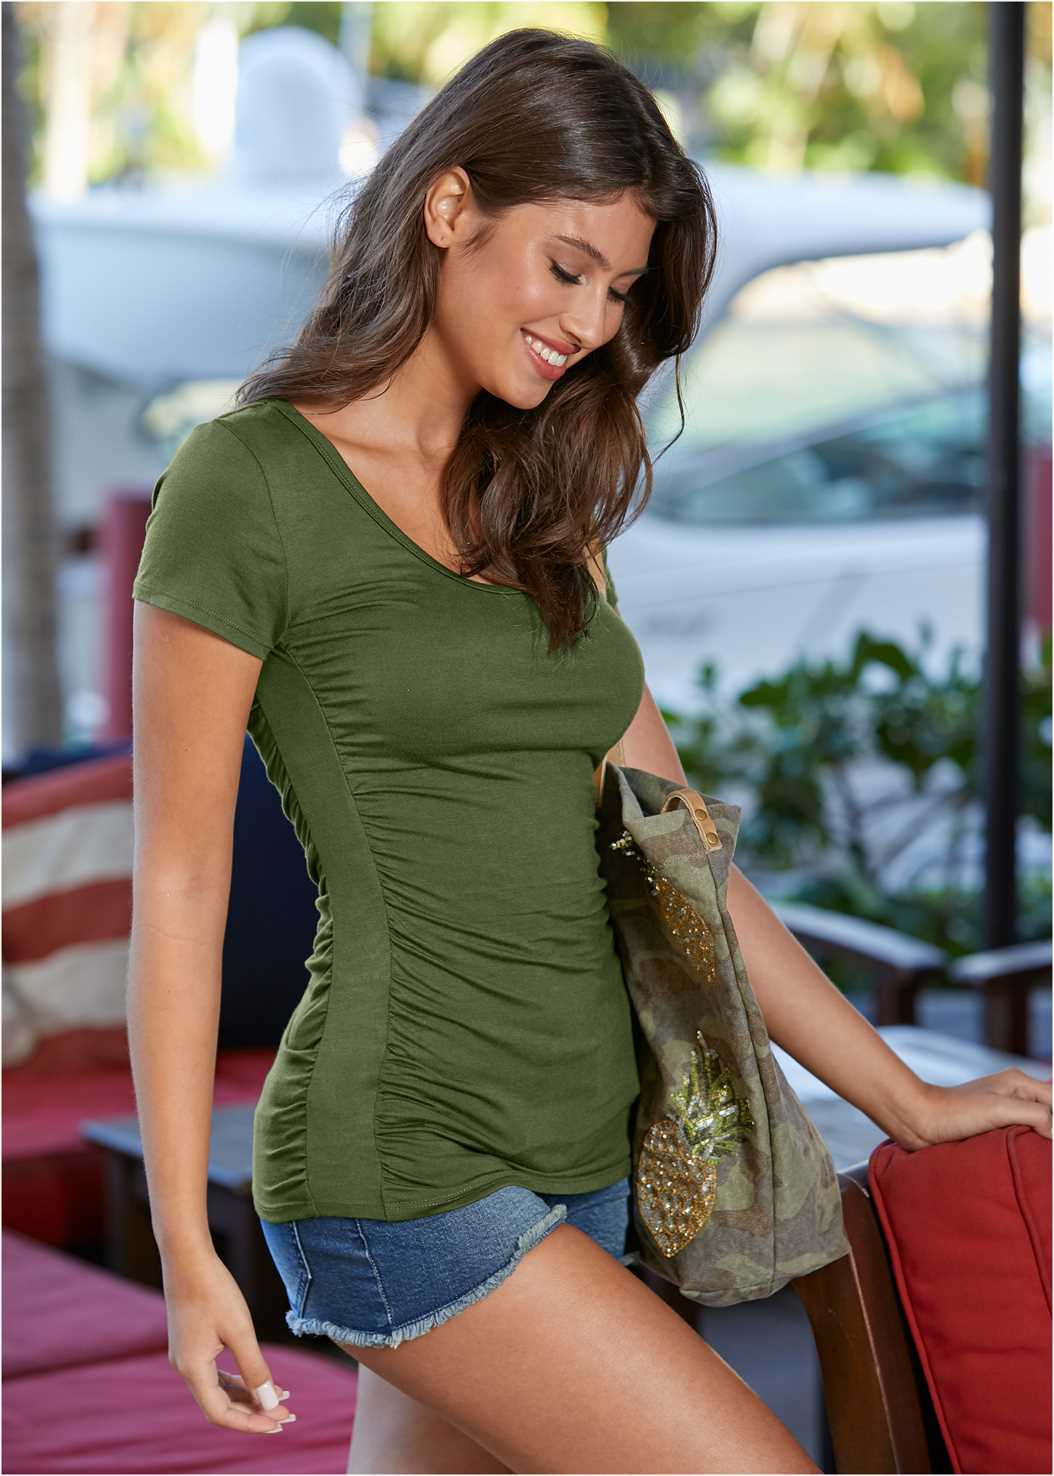 Ruched Detail Top,Frayed Cut Off Jean Shorts,Mid Rise Color Skinny Jeans,Camo Tote Bag